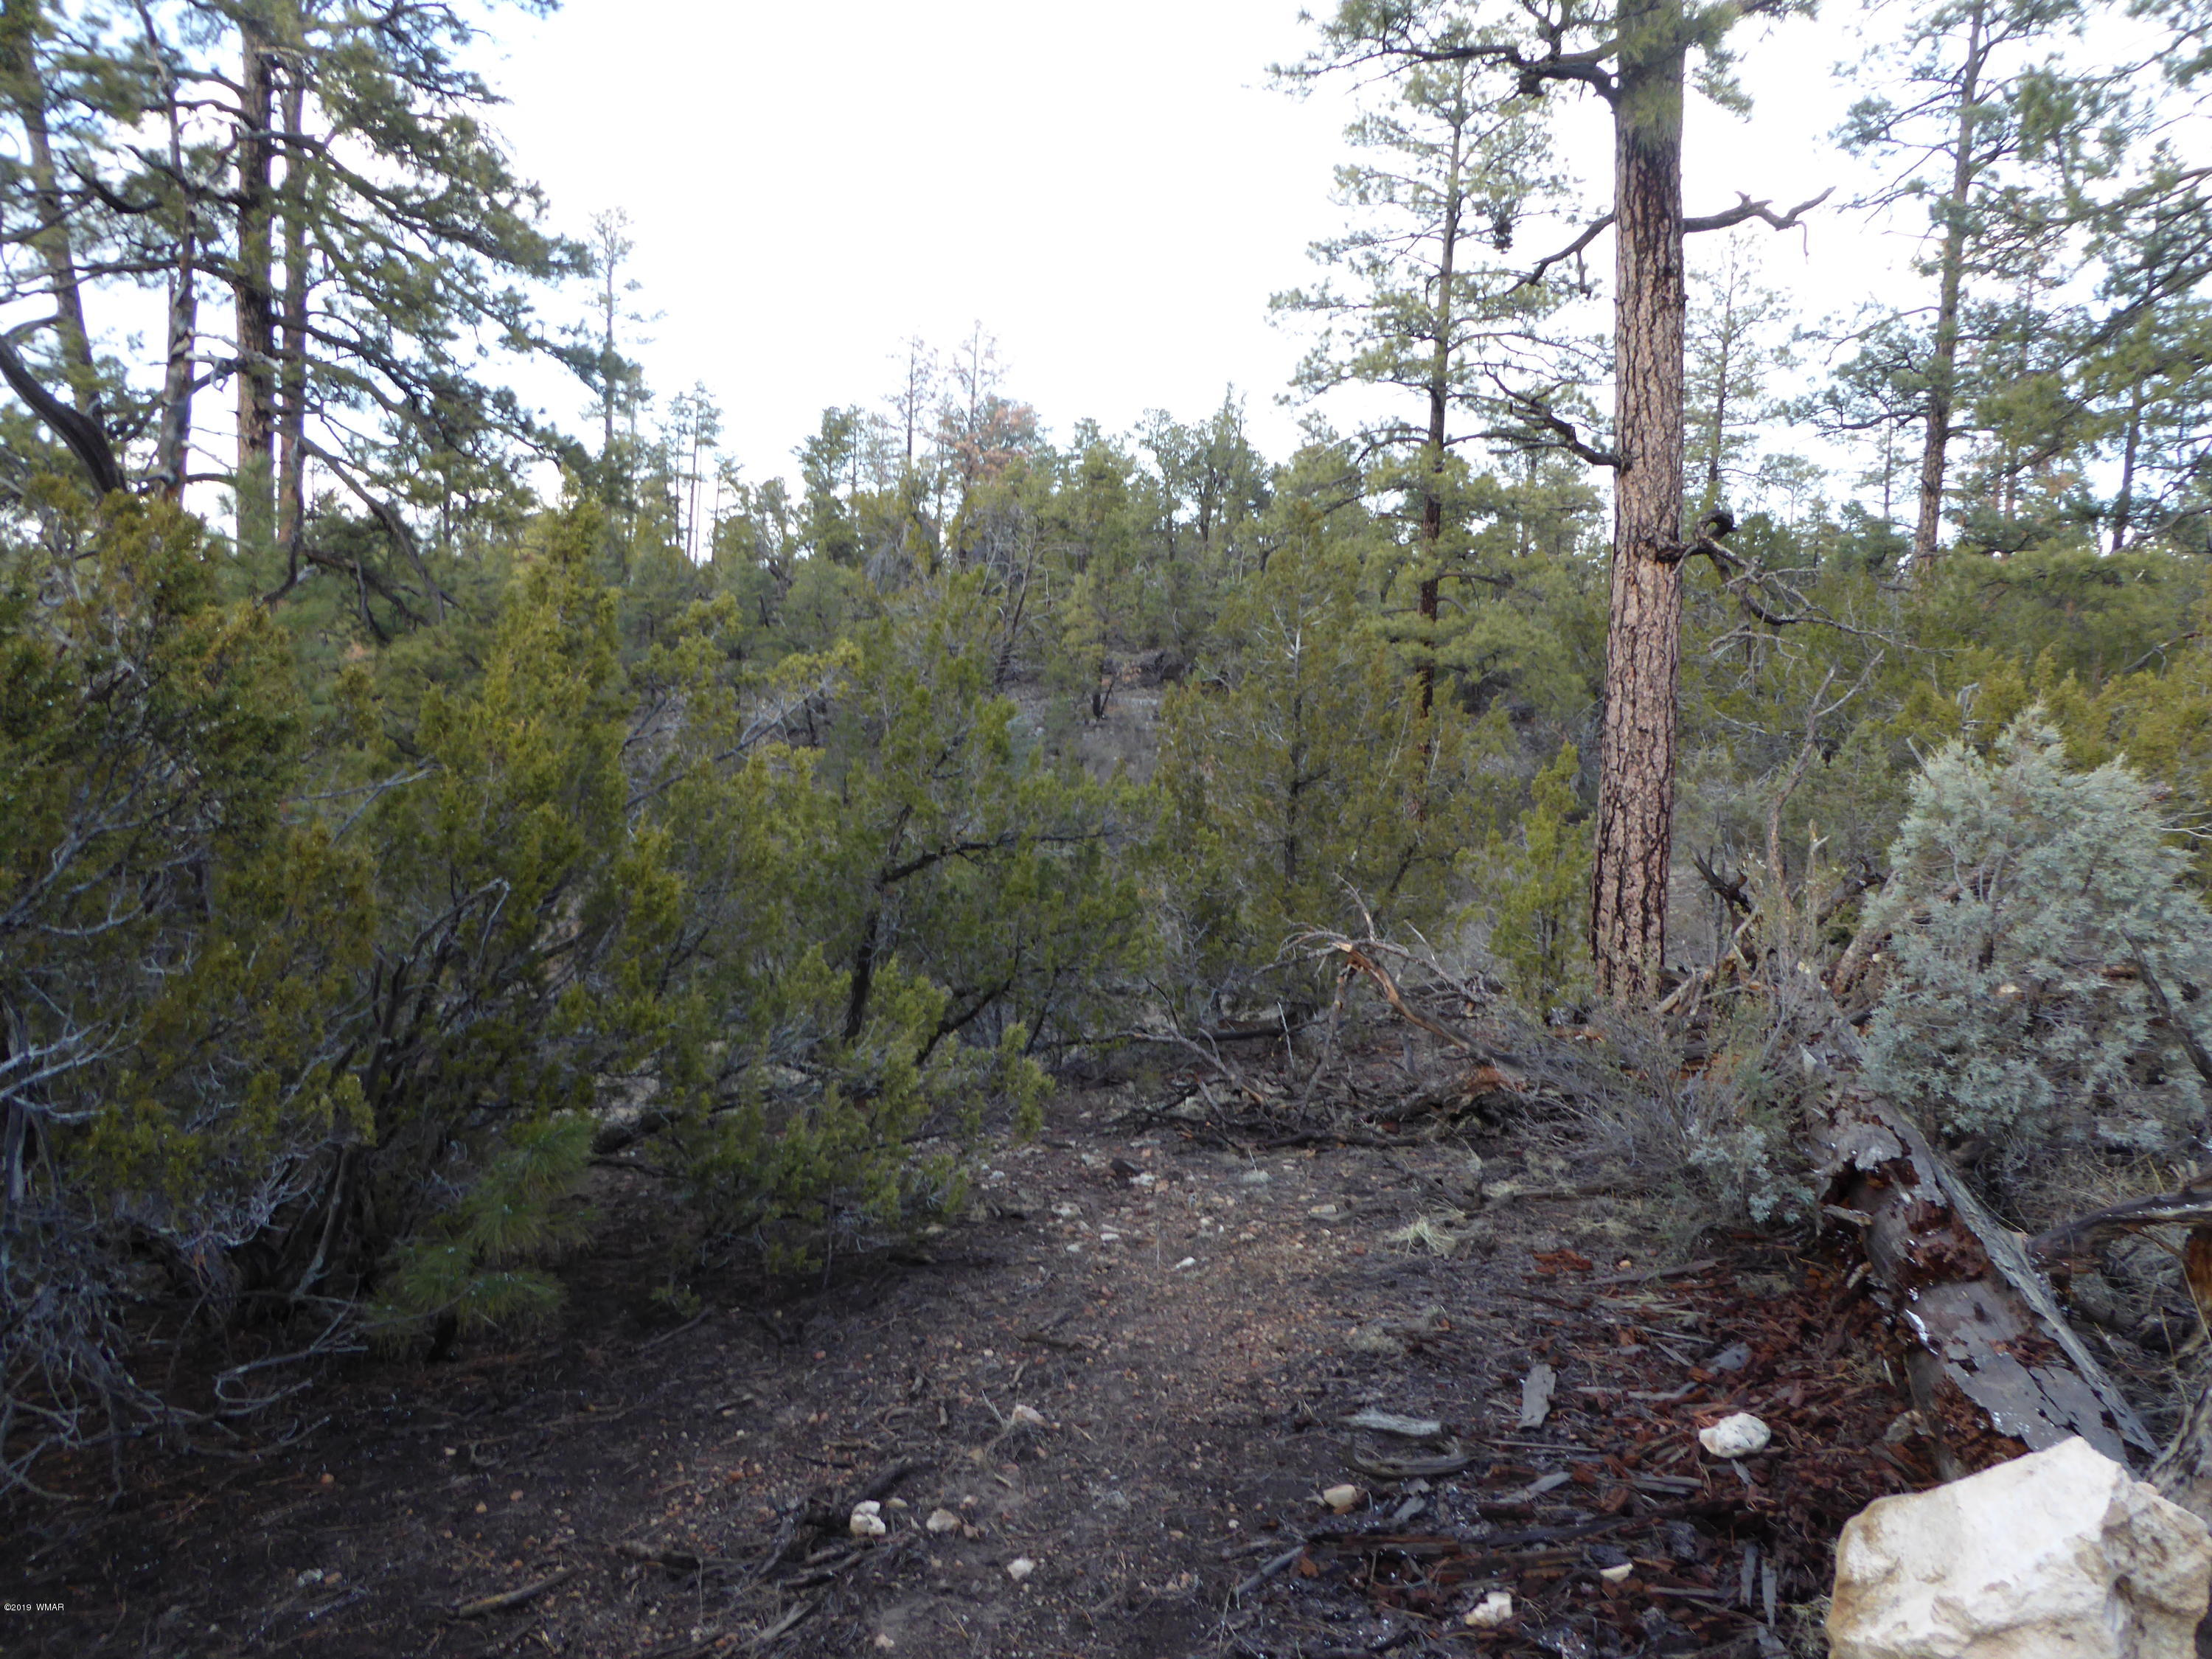 This beautiful 2.55 acre lot backs to the National Forest. A nice spot at the top of the hill for your new home. Nice views all around with plenty of ponderosa and junipers on the lot also the 2.36 acre lot next to this one is also for sale for a total of 4.91 acres. These properties are a must see.